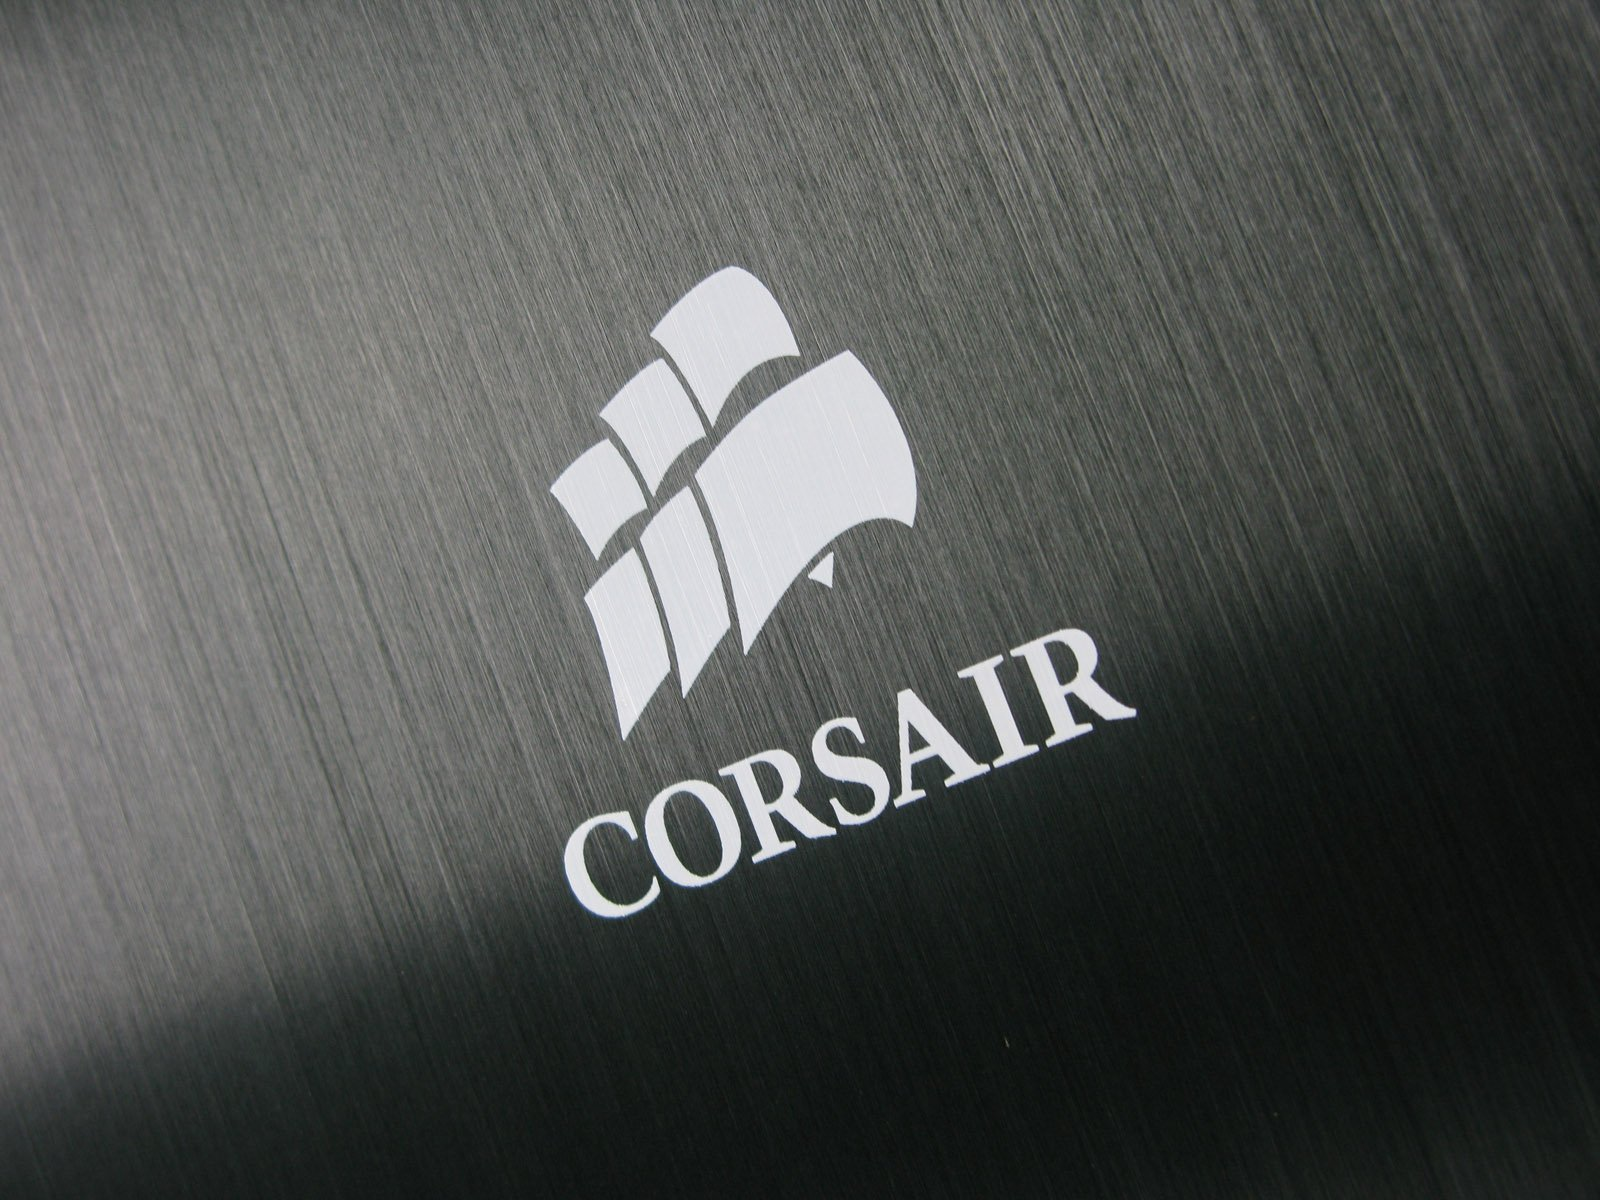 47 Corsair Desktop Wallpaper On Wallpapersafari